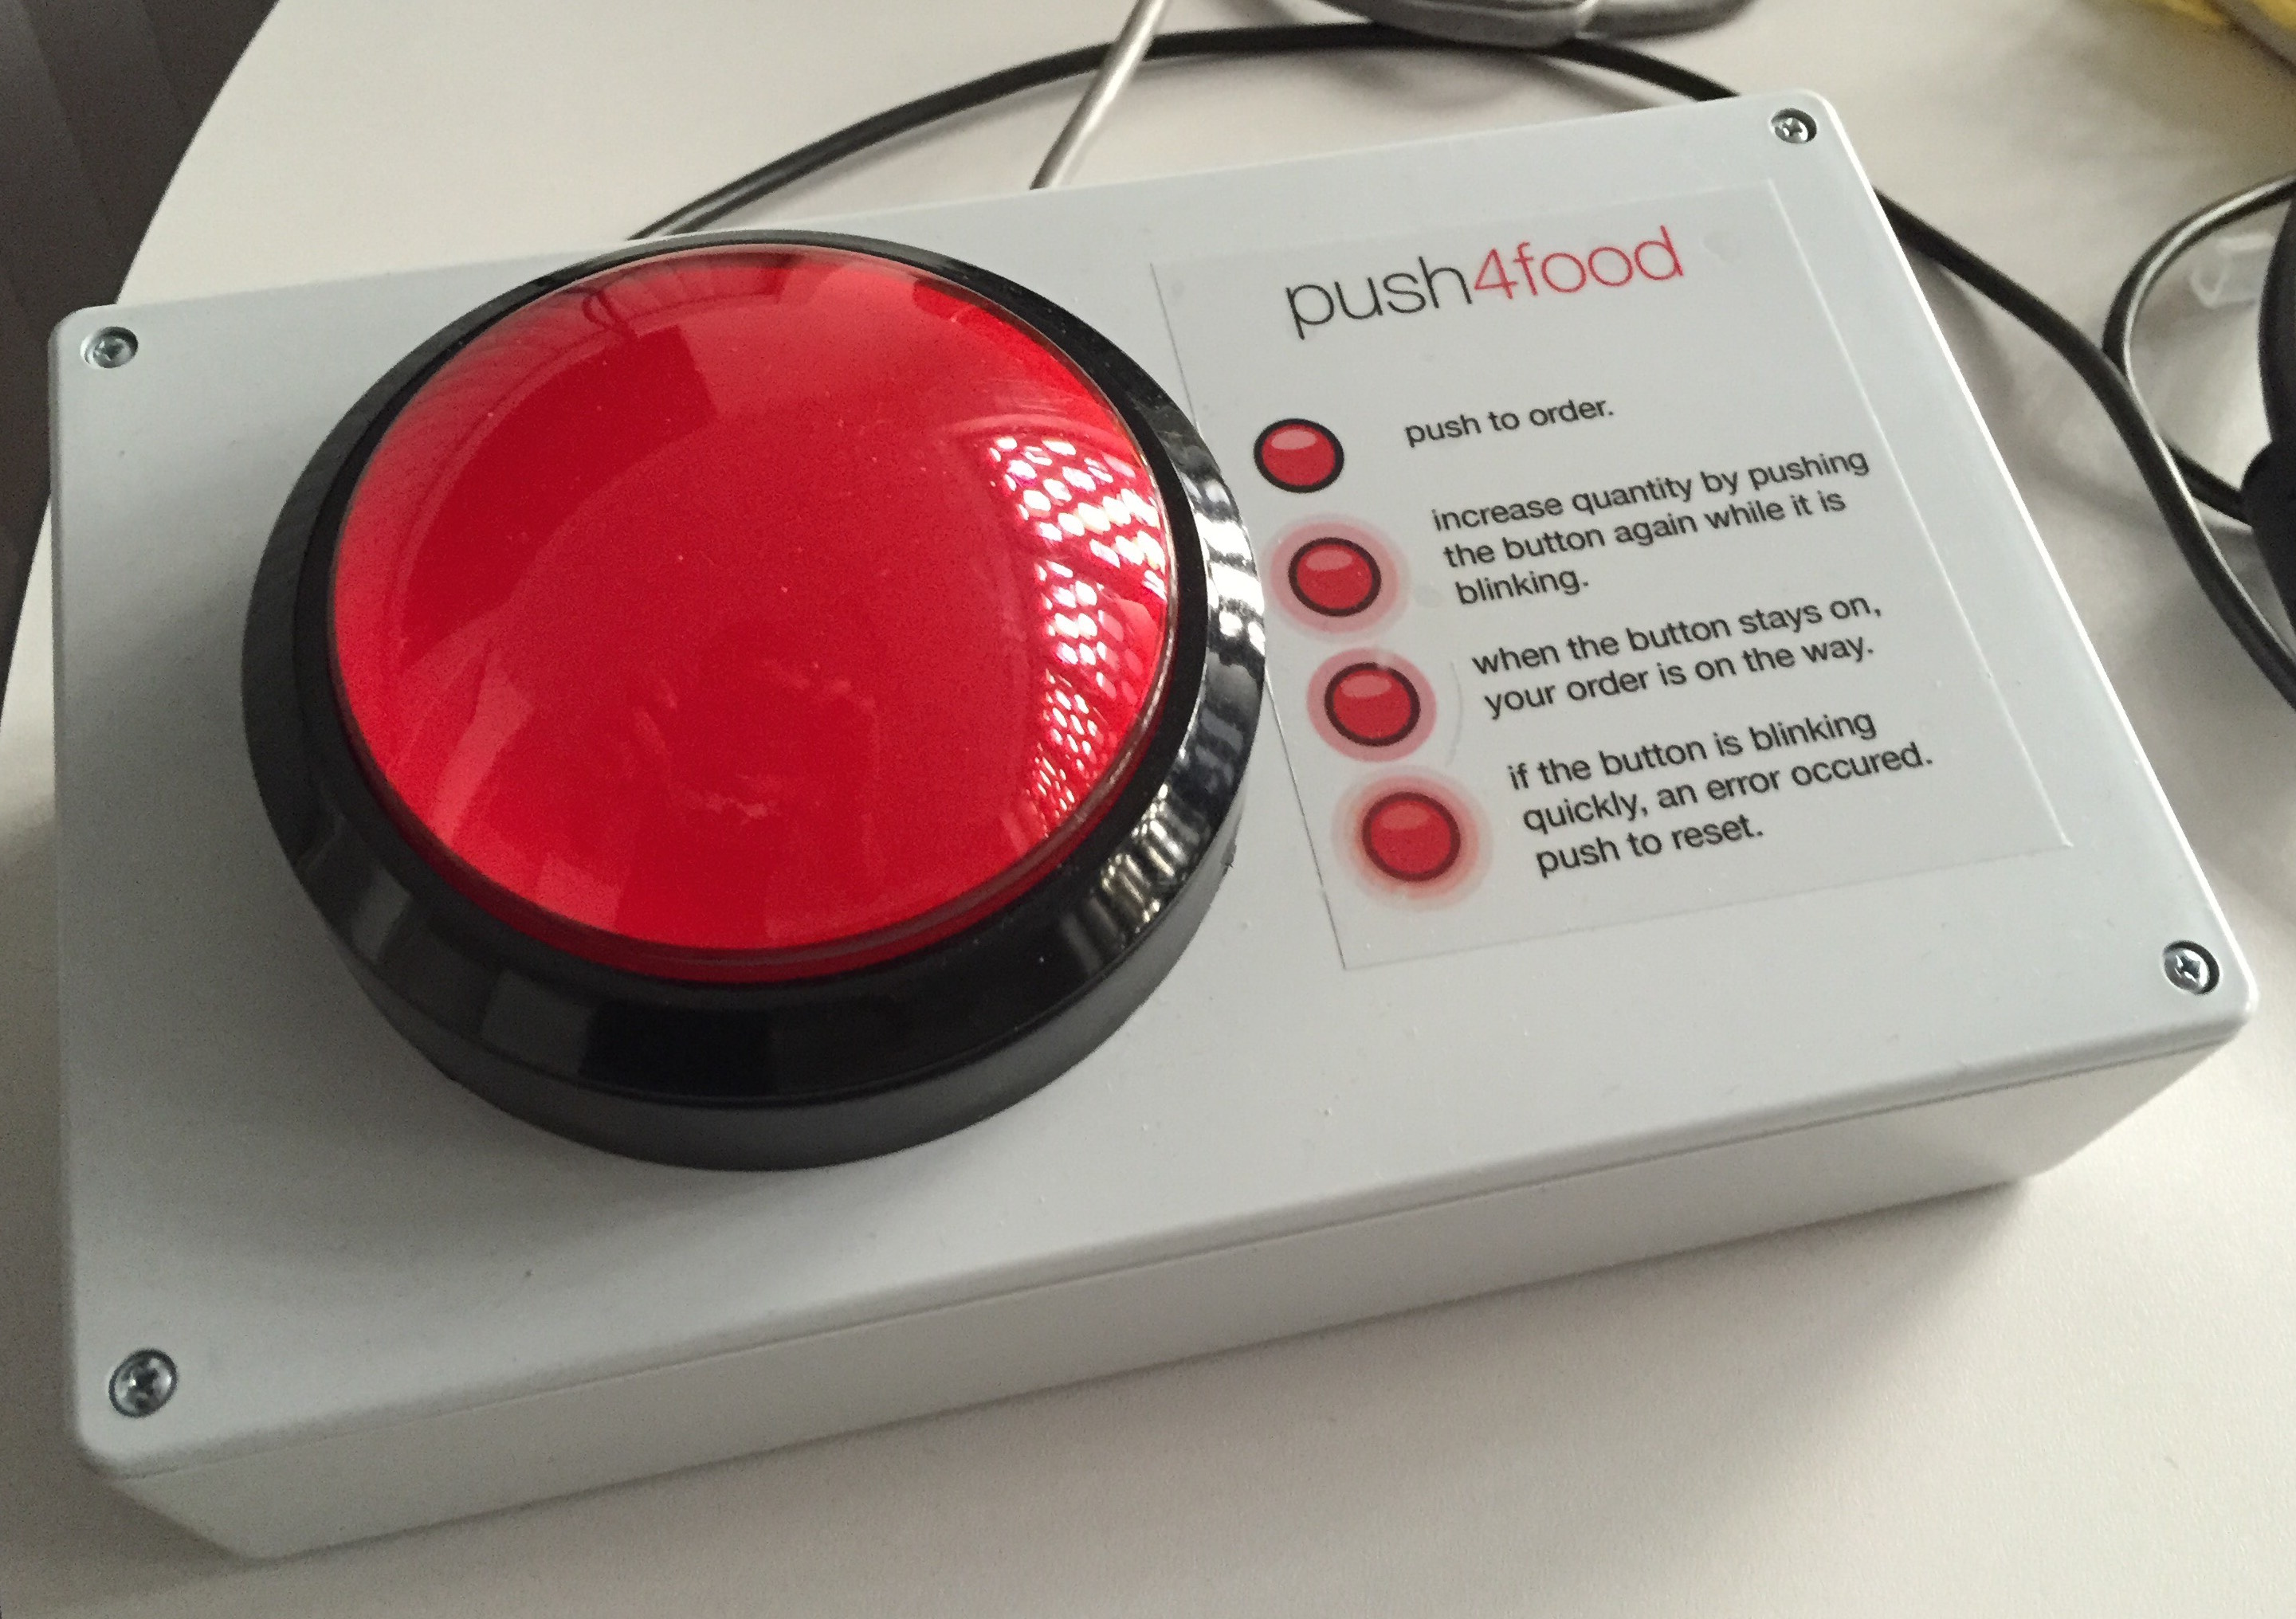 A Raspberry Pi based food ordering button